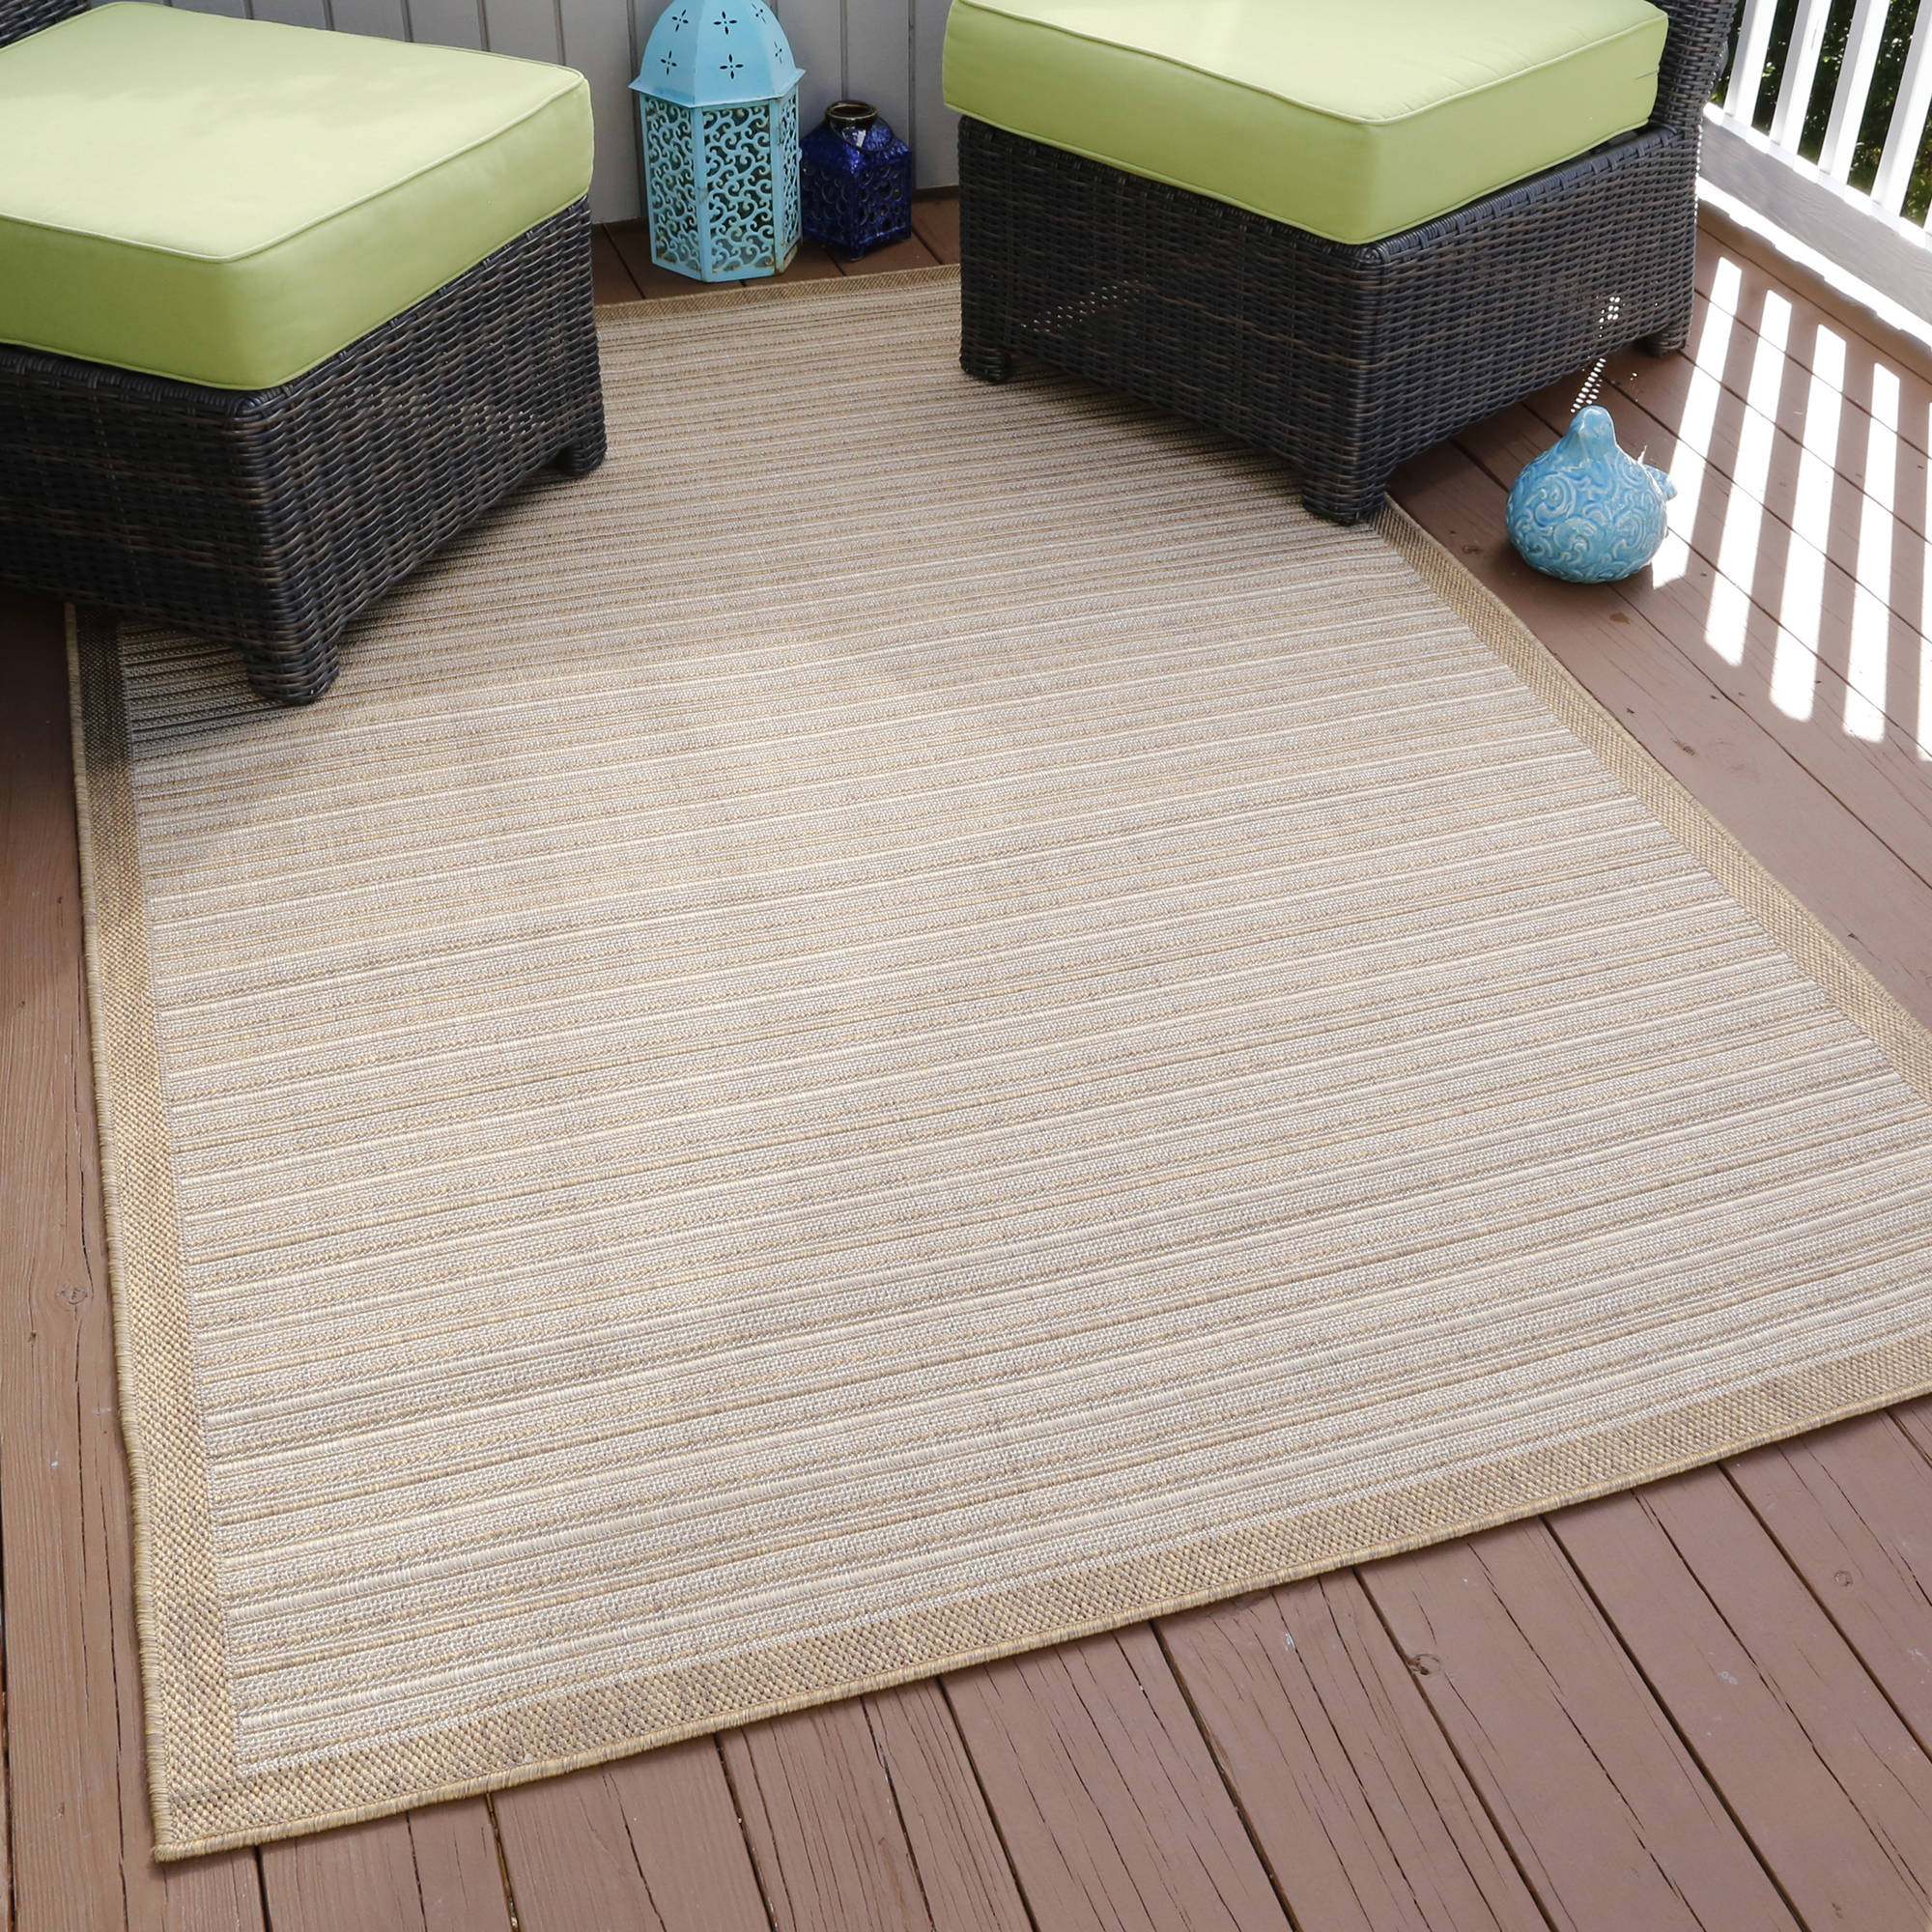 Somerset Home Casual Stripe Indoor/Outdoor Area Rug, Beige, 5' x 7'7""